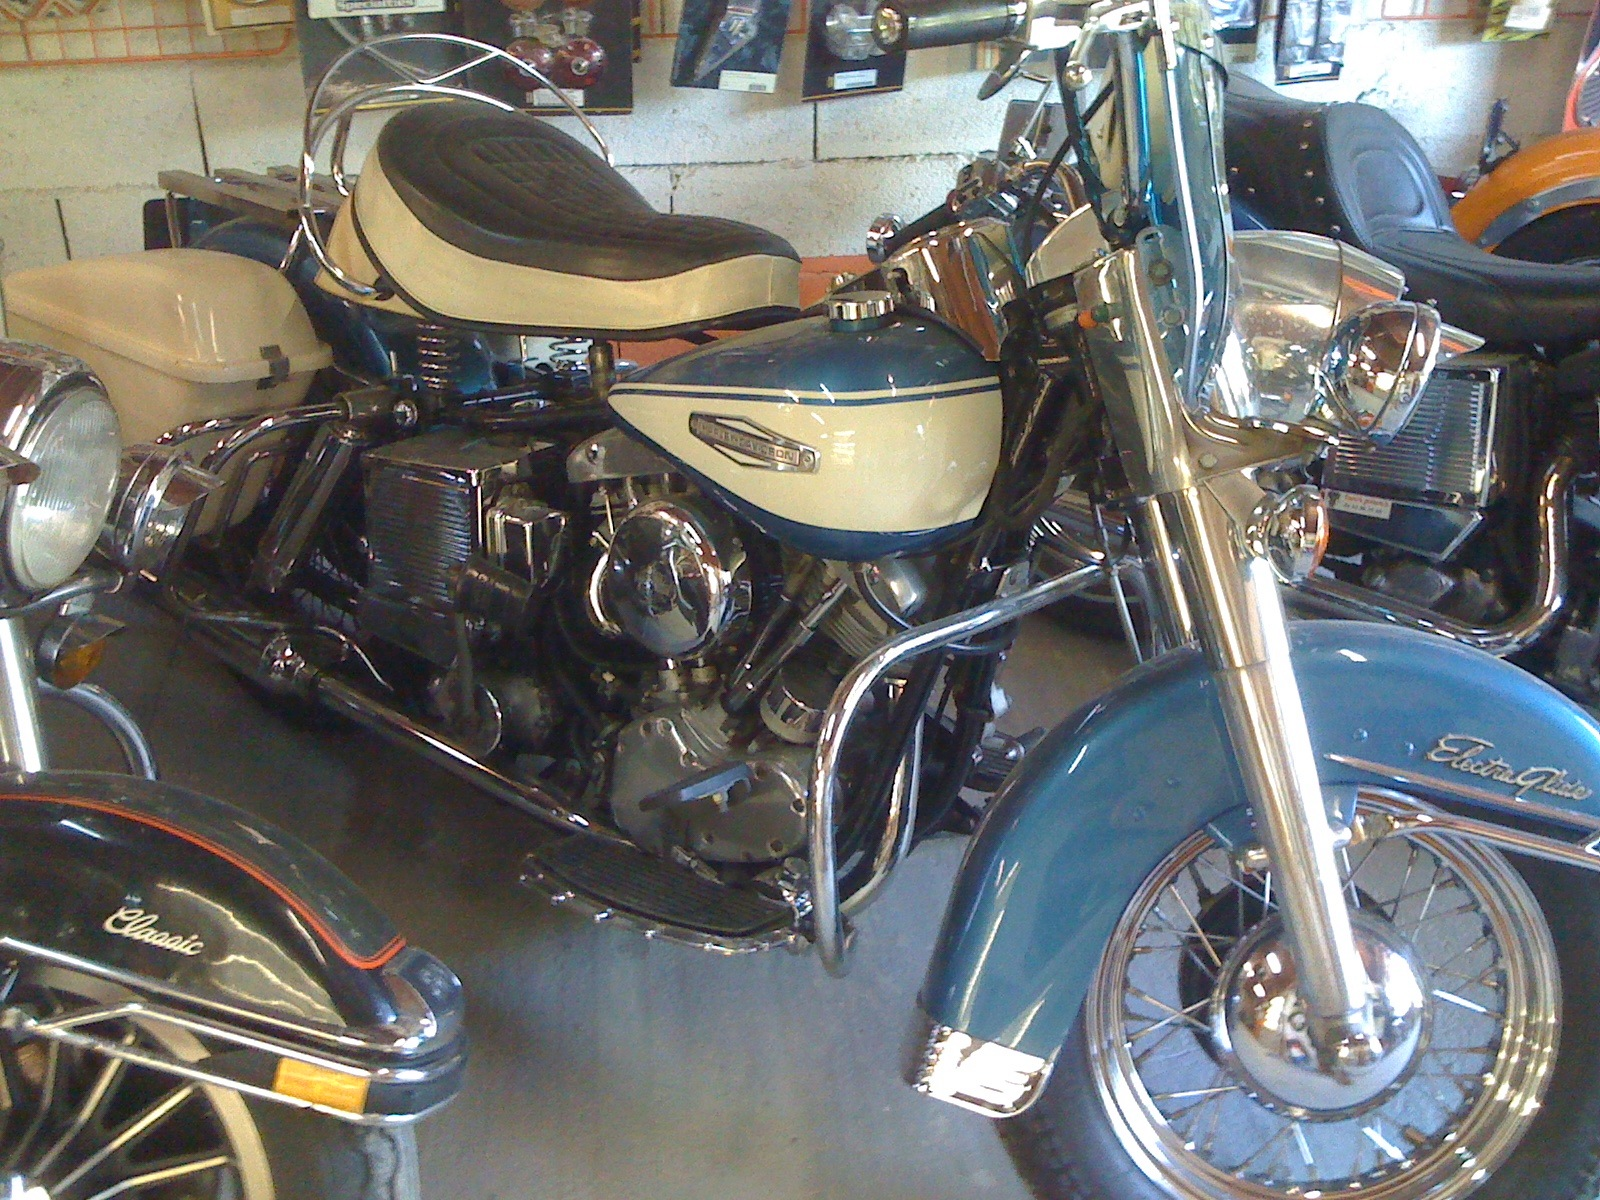 Les vieilles Harley Only (ante 84) du Forum Passion-Harley - Page 10 Vieill60